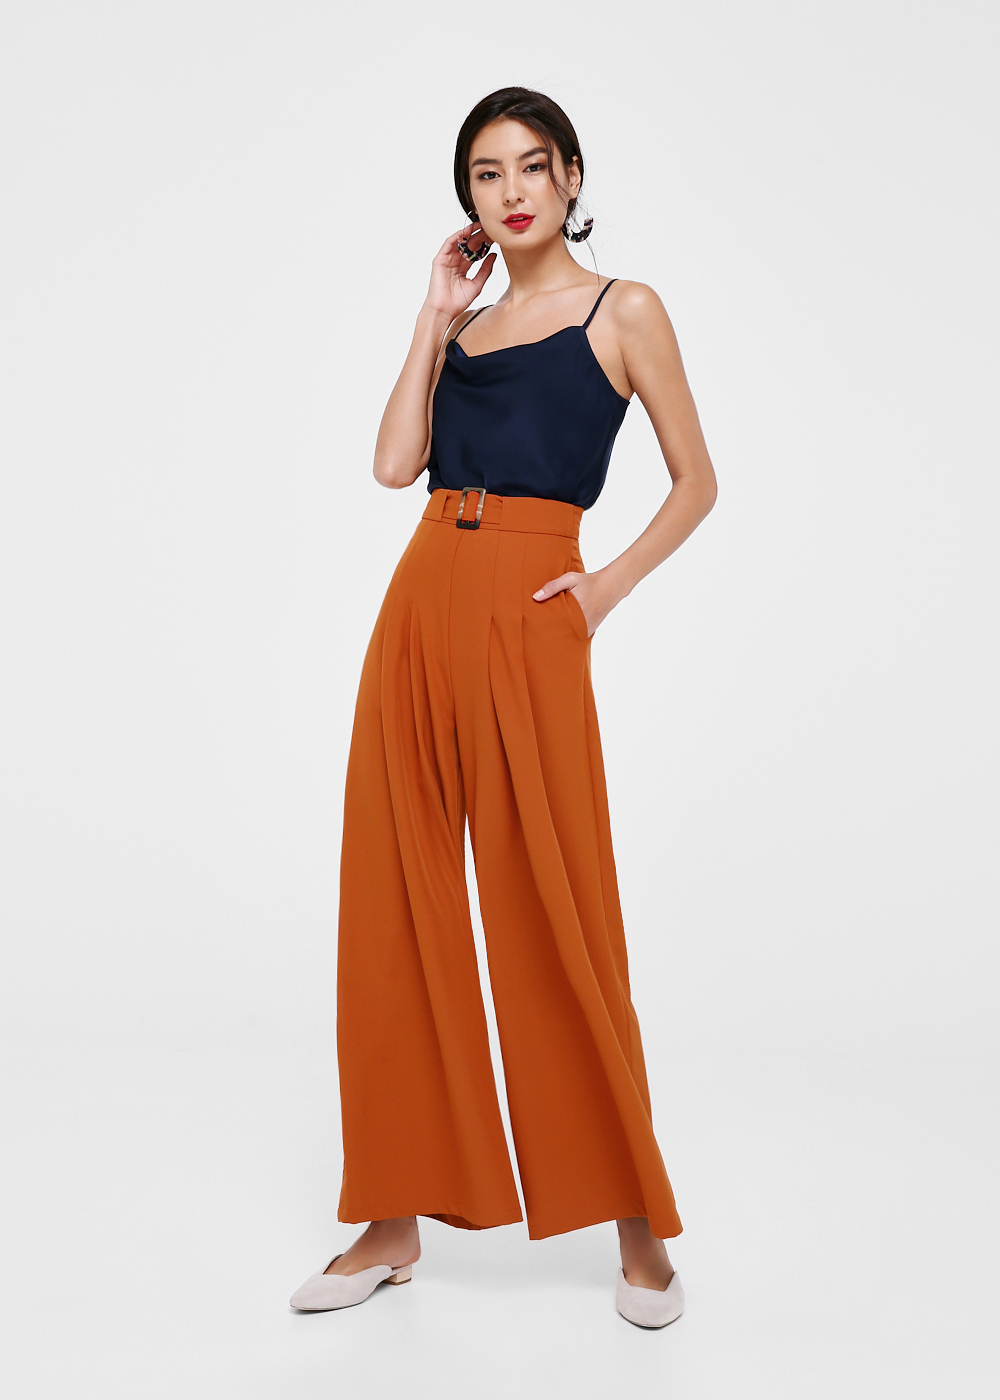 Alayna Buckle Front Wide Leg Pants